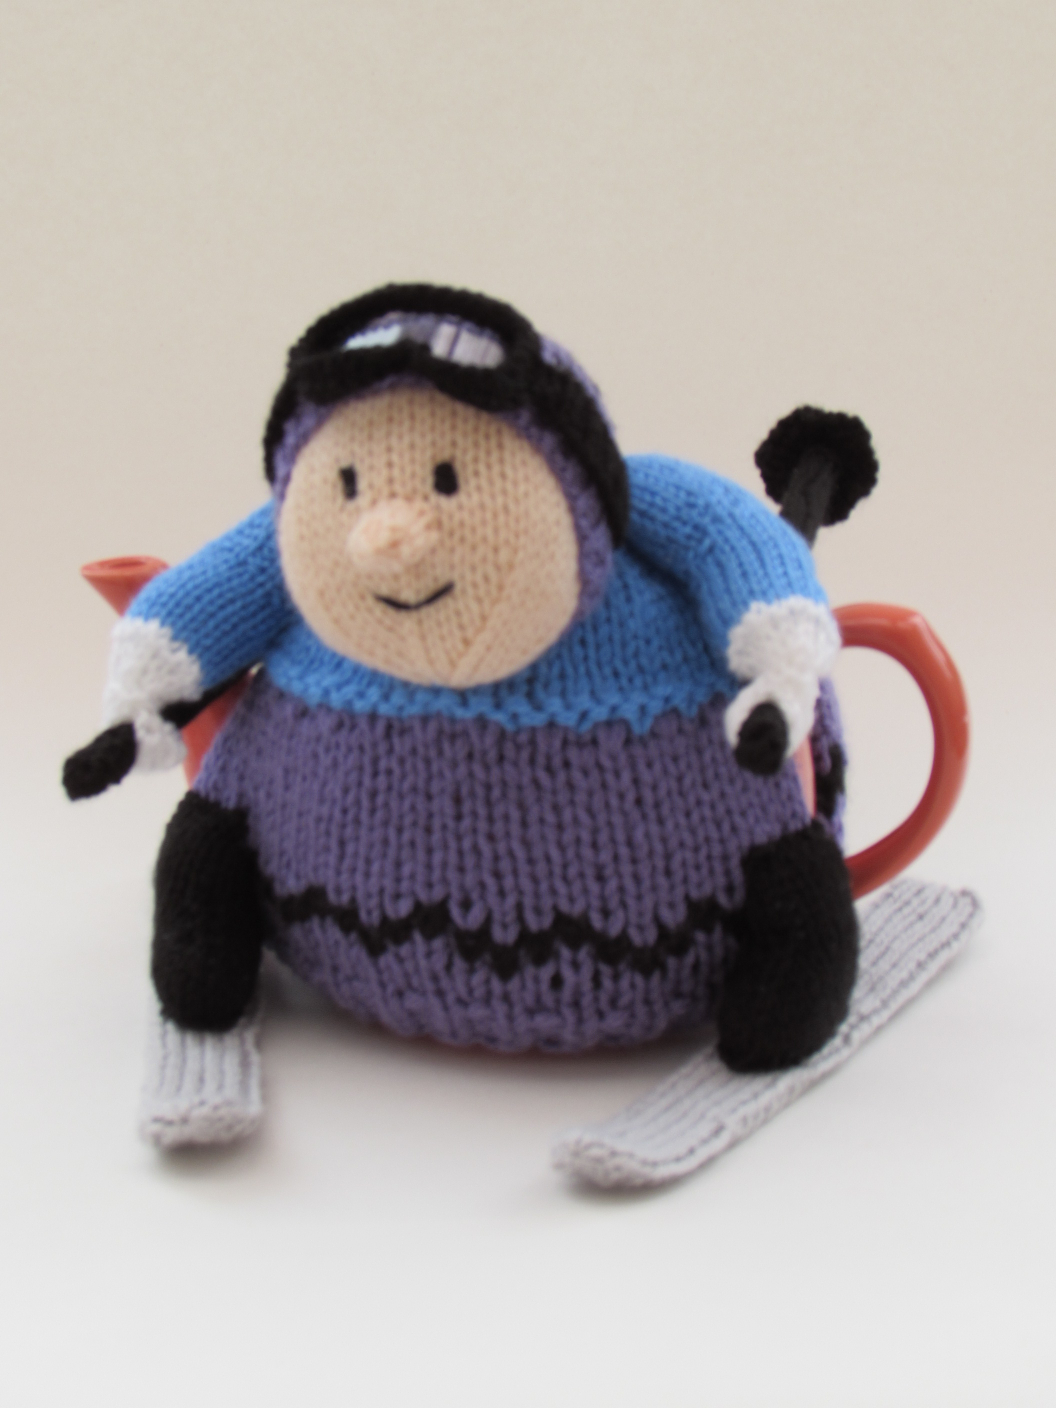 Skier knitting pattern